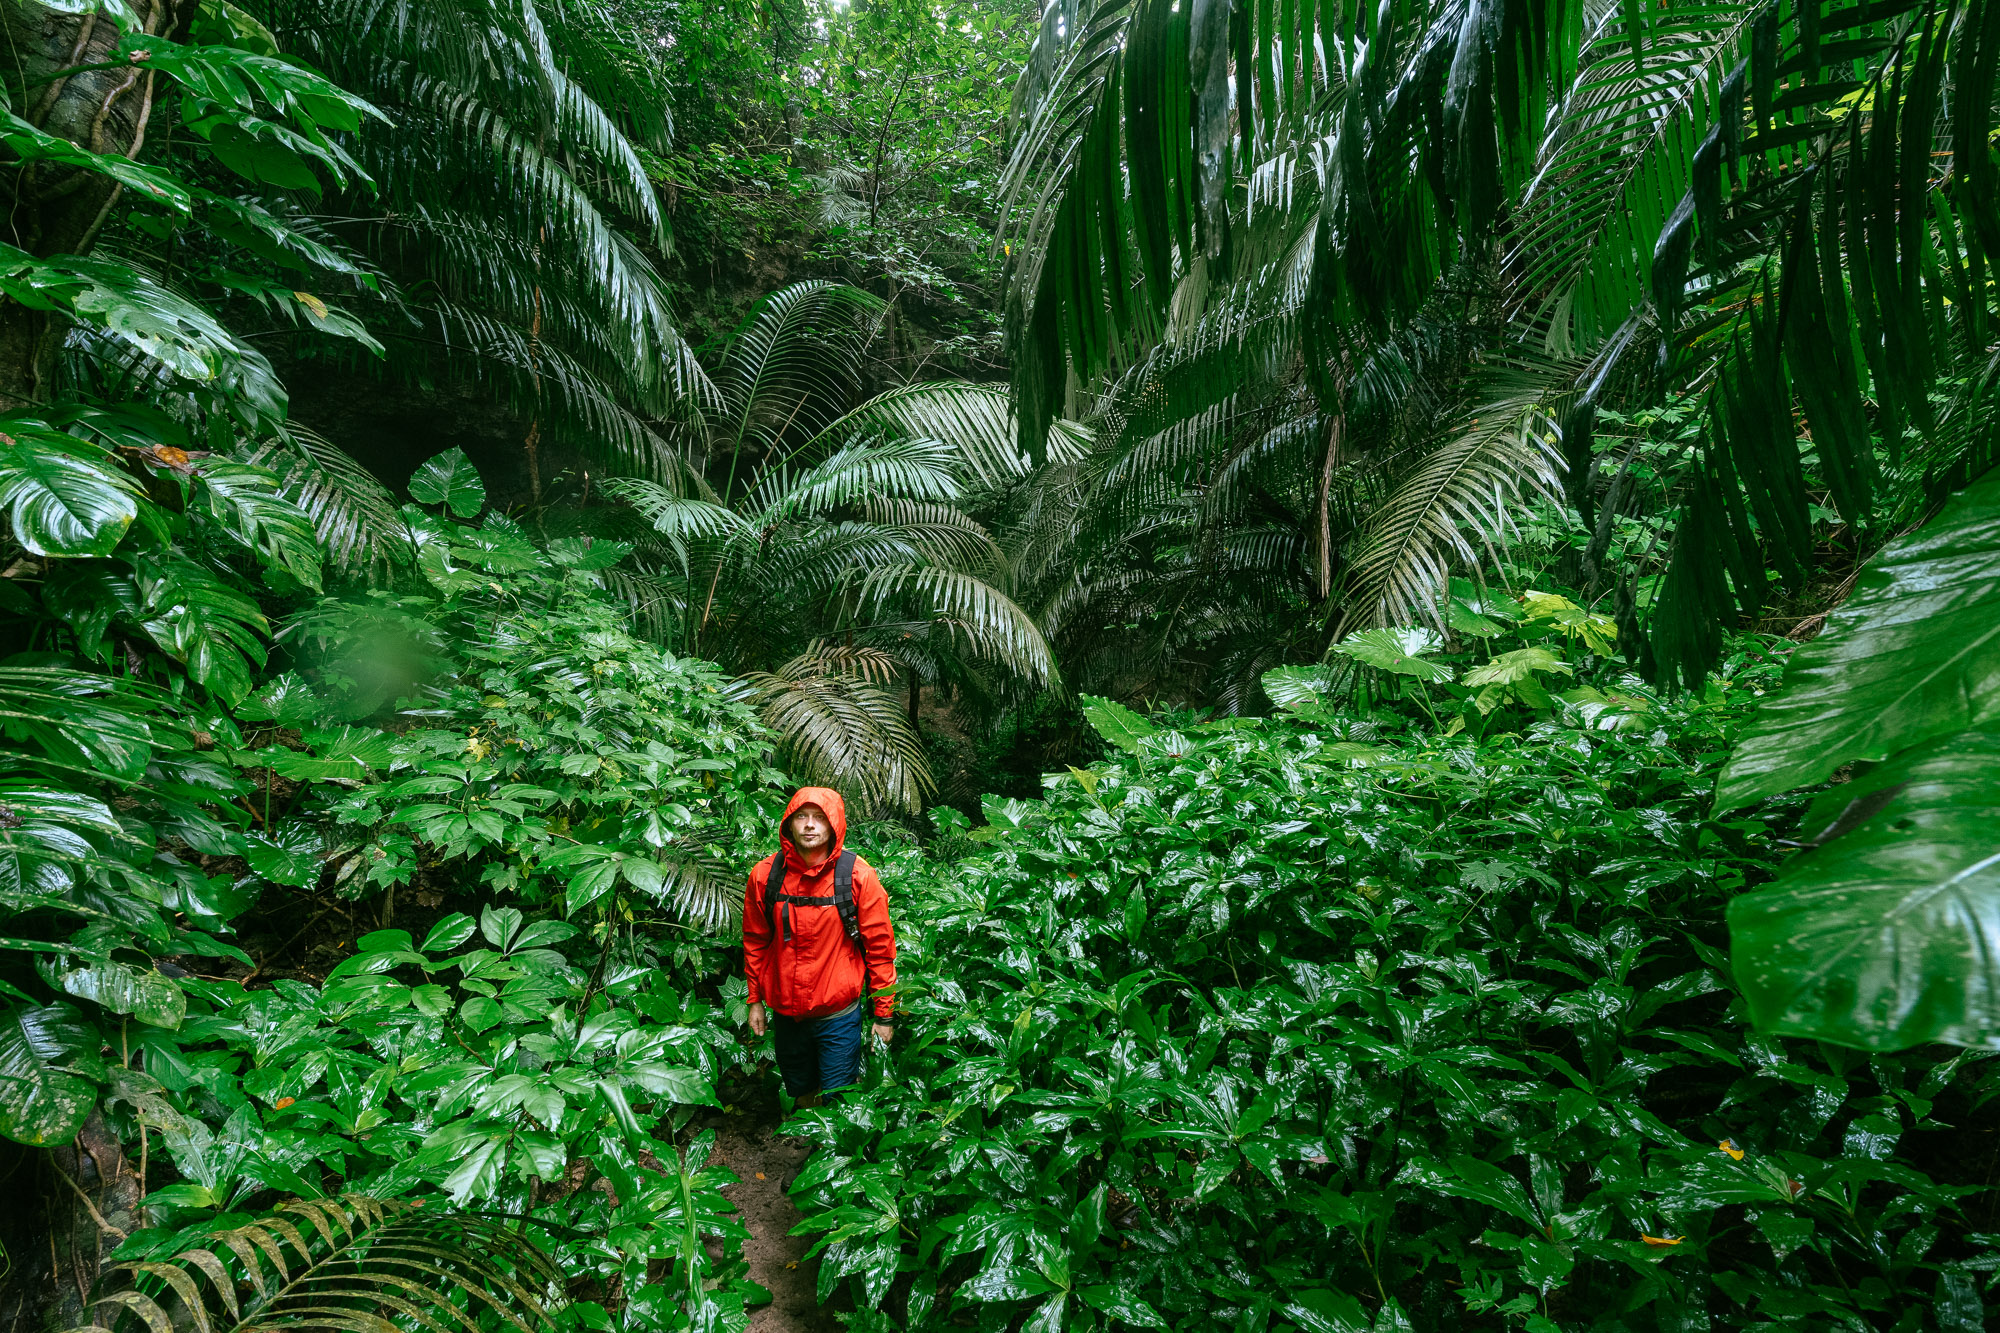 The rain brings out the lush greens of Iriomote Island